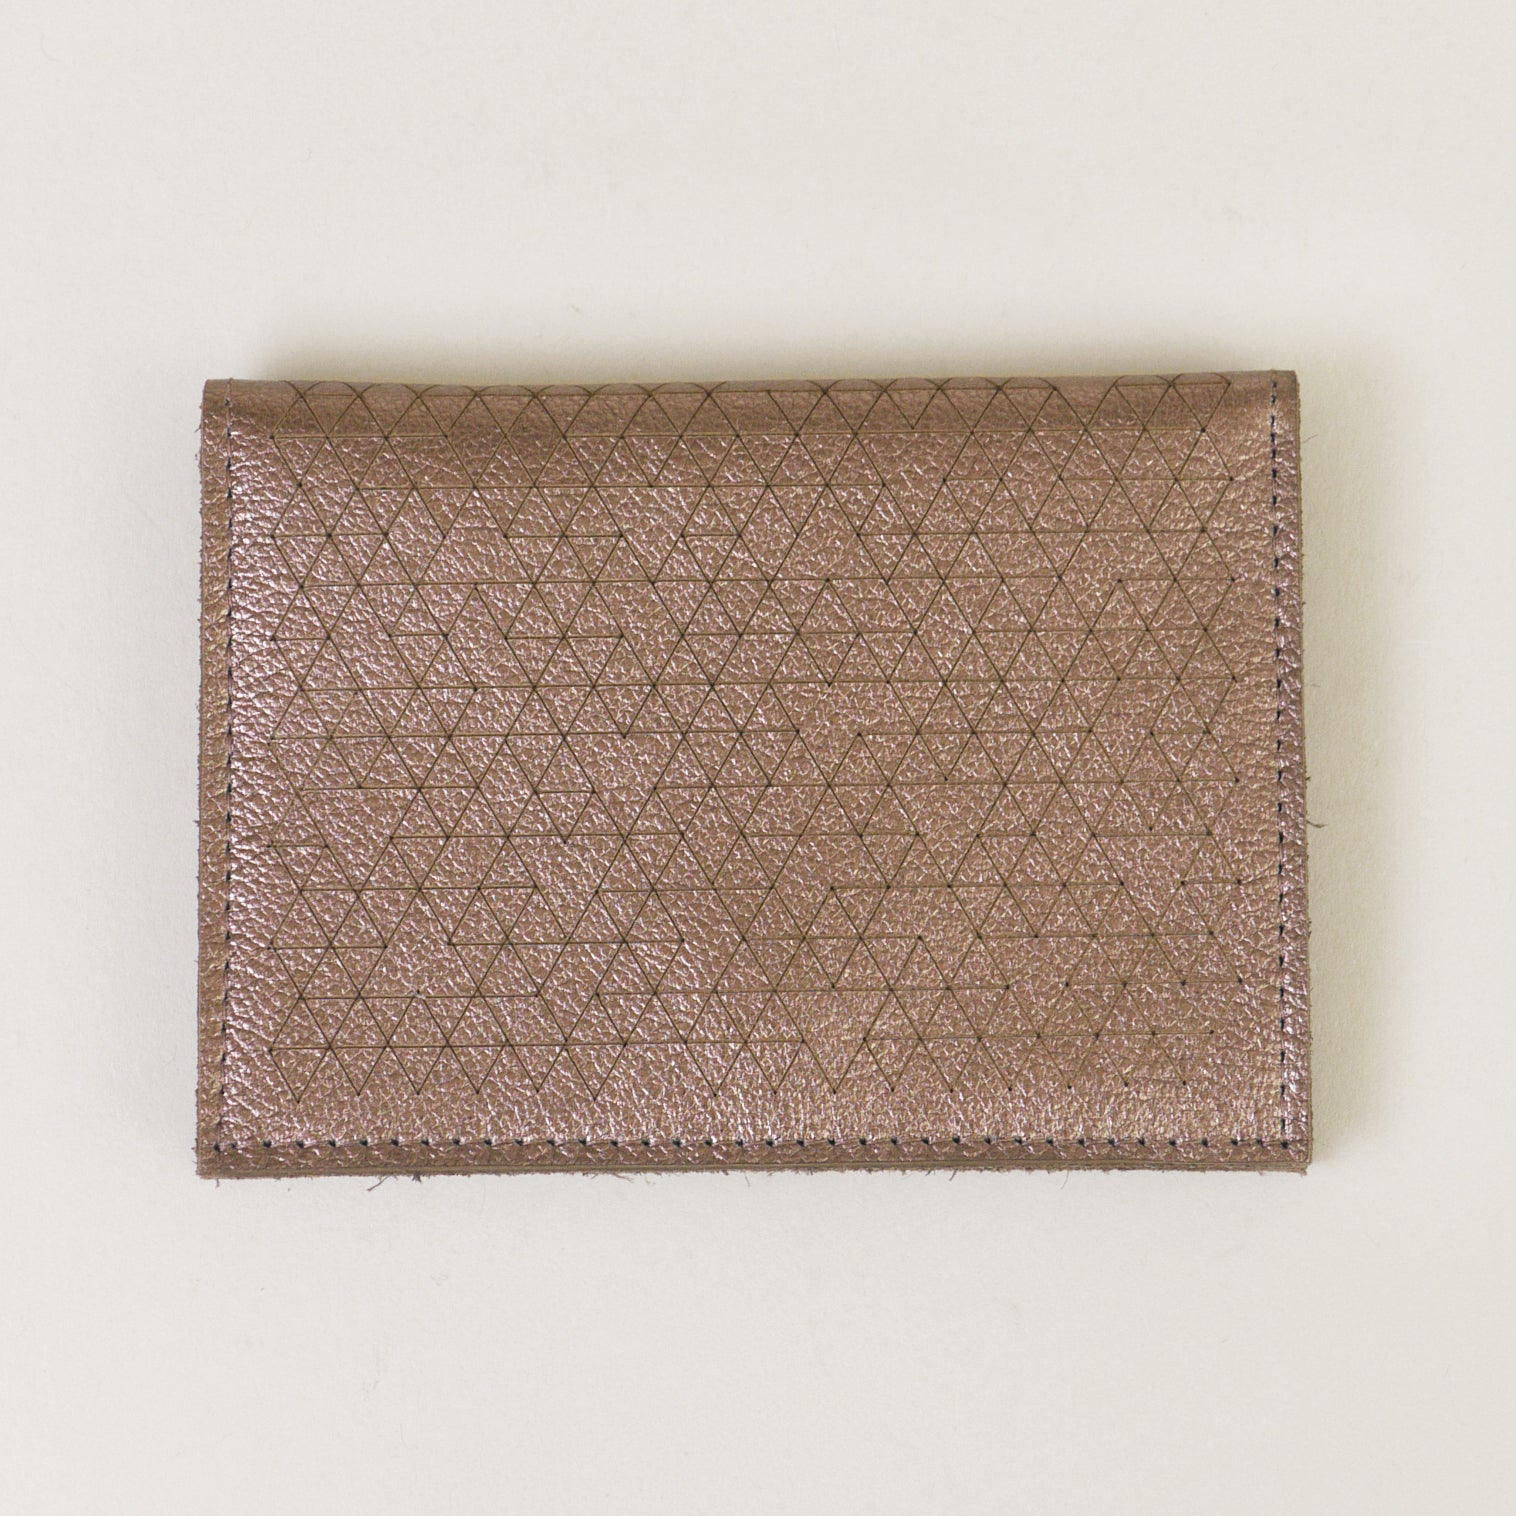 Laser-cut Leather Card Wallet - Shiny Copper